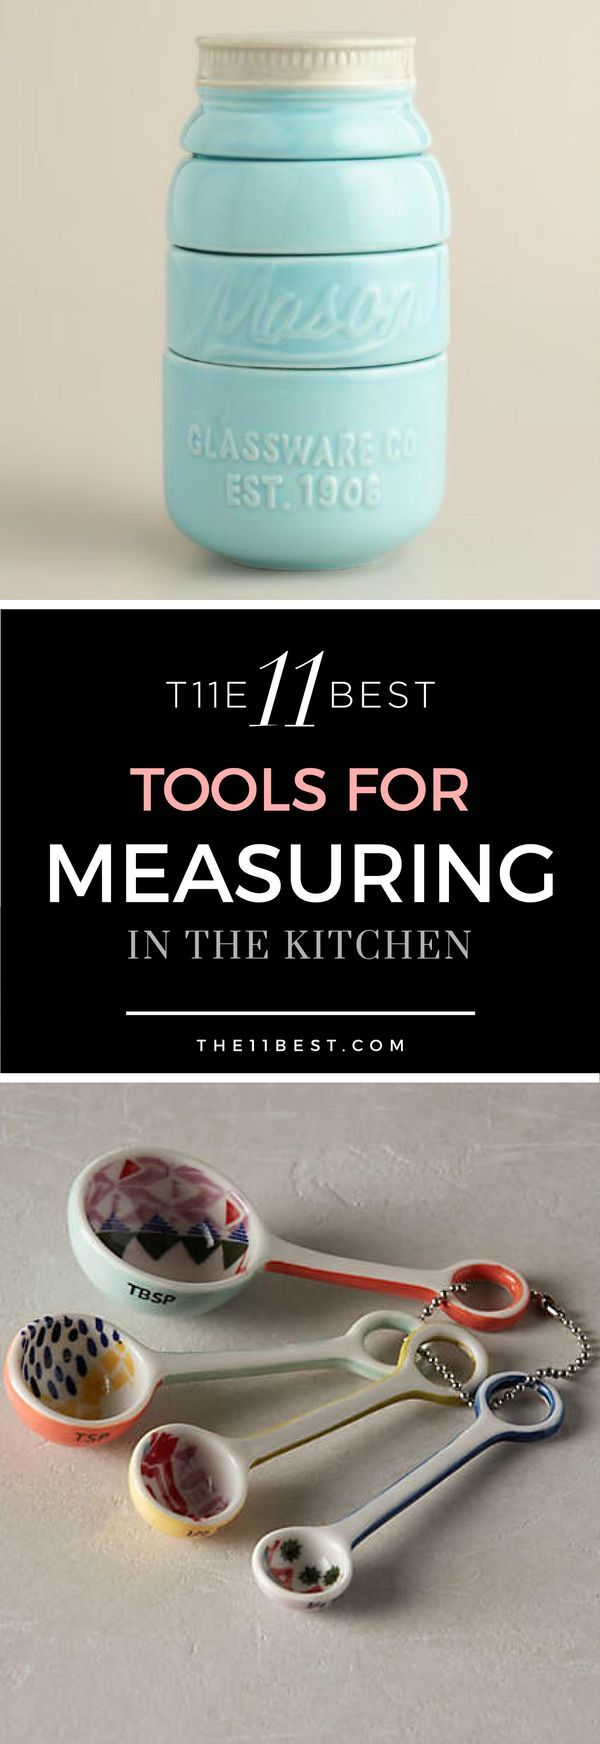 Where fashion and function combine in the kitchen! Cute and kitschy measuring tools are all the rage. The 11 Best Measuring Tools for the Kitchen